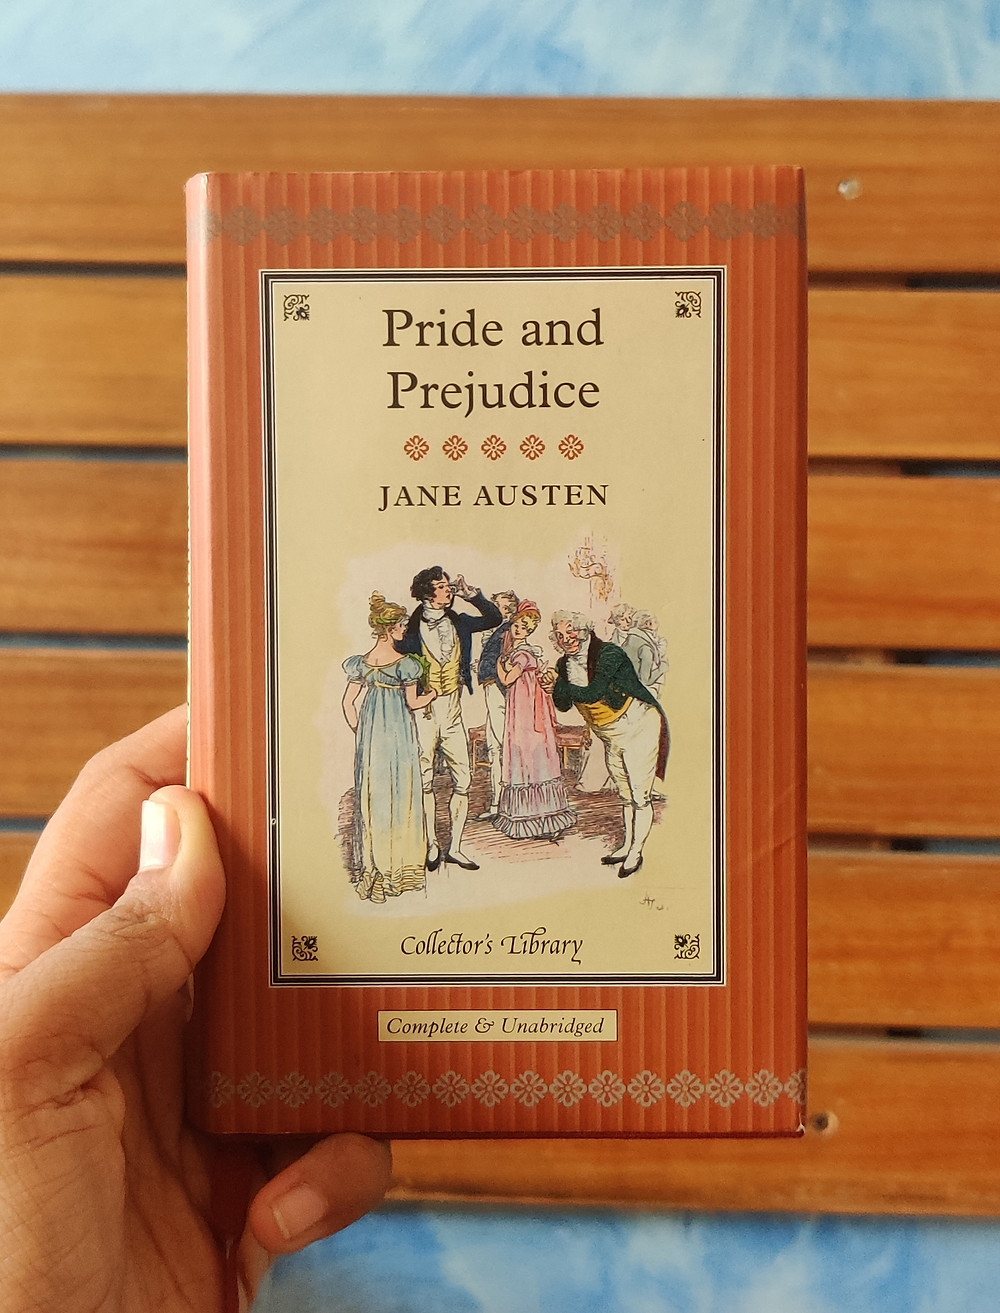 Holding a copy of the book Pride and Prejudice against a brown background